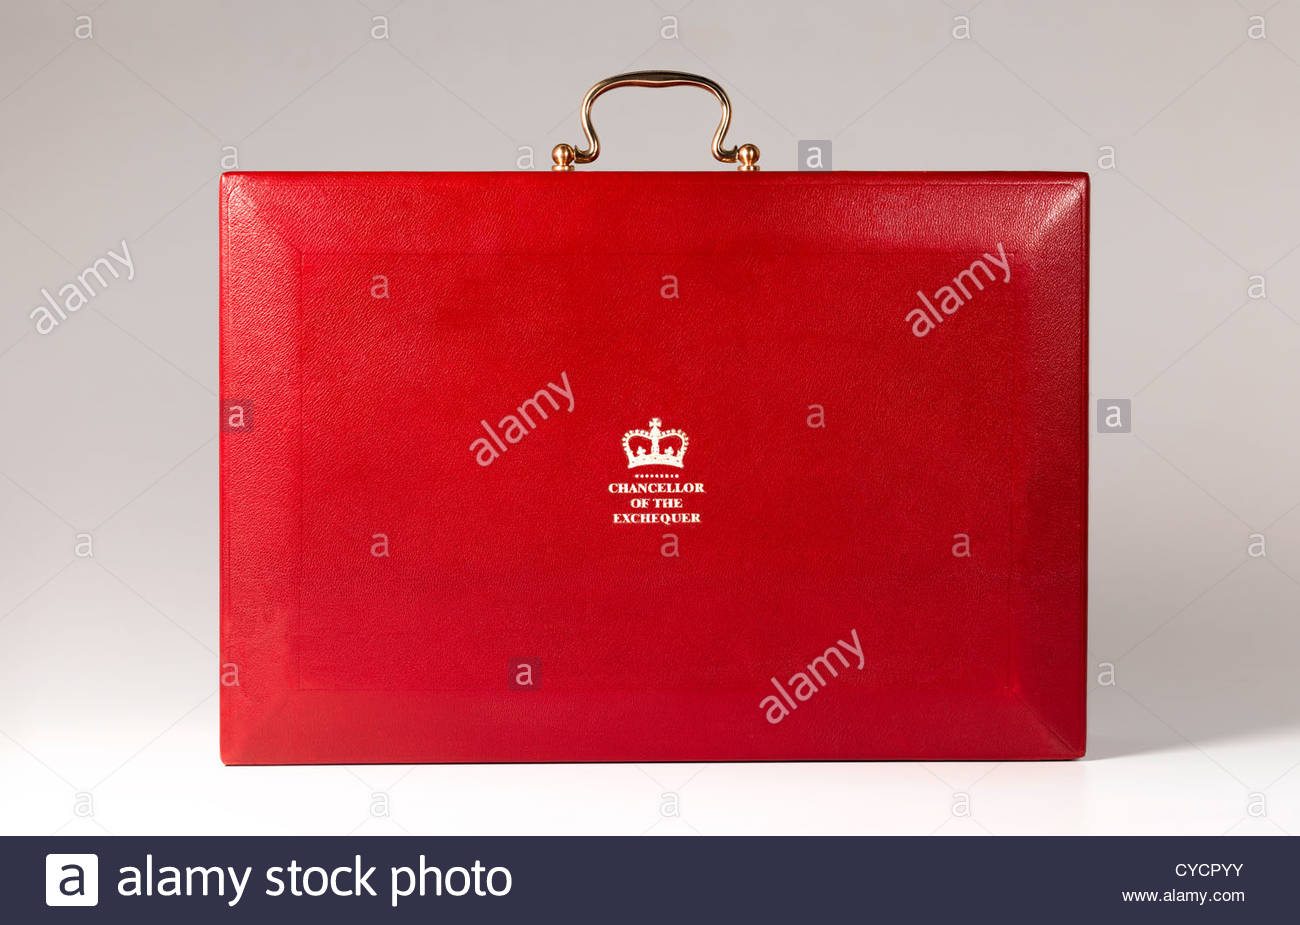 Chancellor of the Exchequer's budget in red box, ministerial case to present top secret annual budget plan to - Stock Image